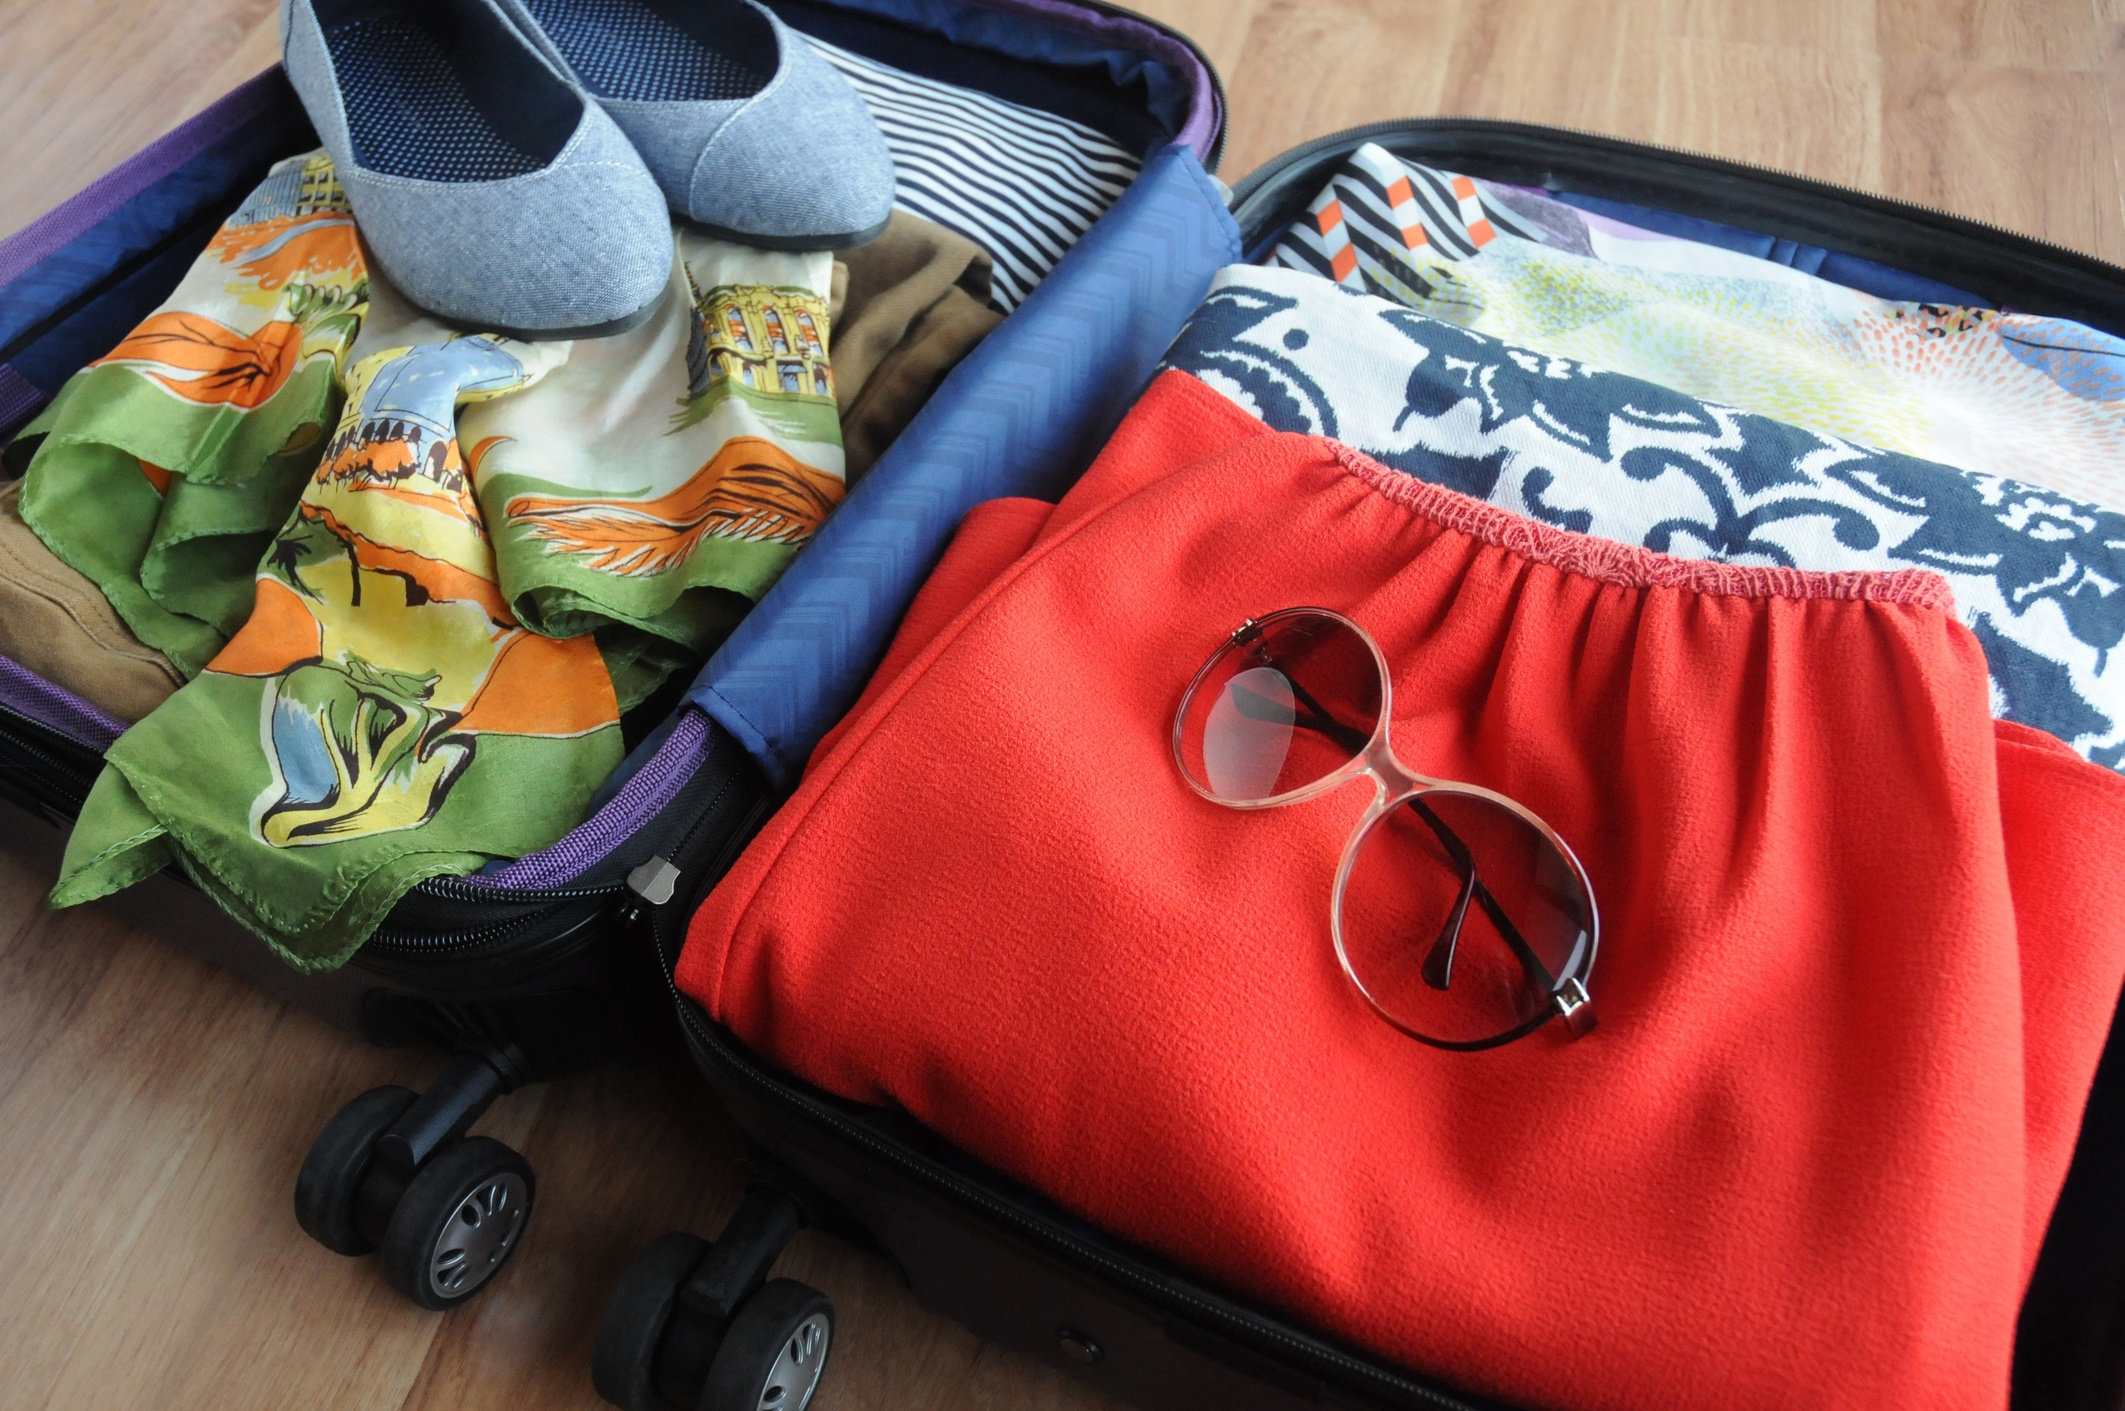 Experienced travelers will pack their luggage according to airline rules